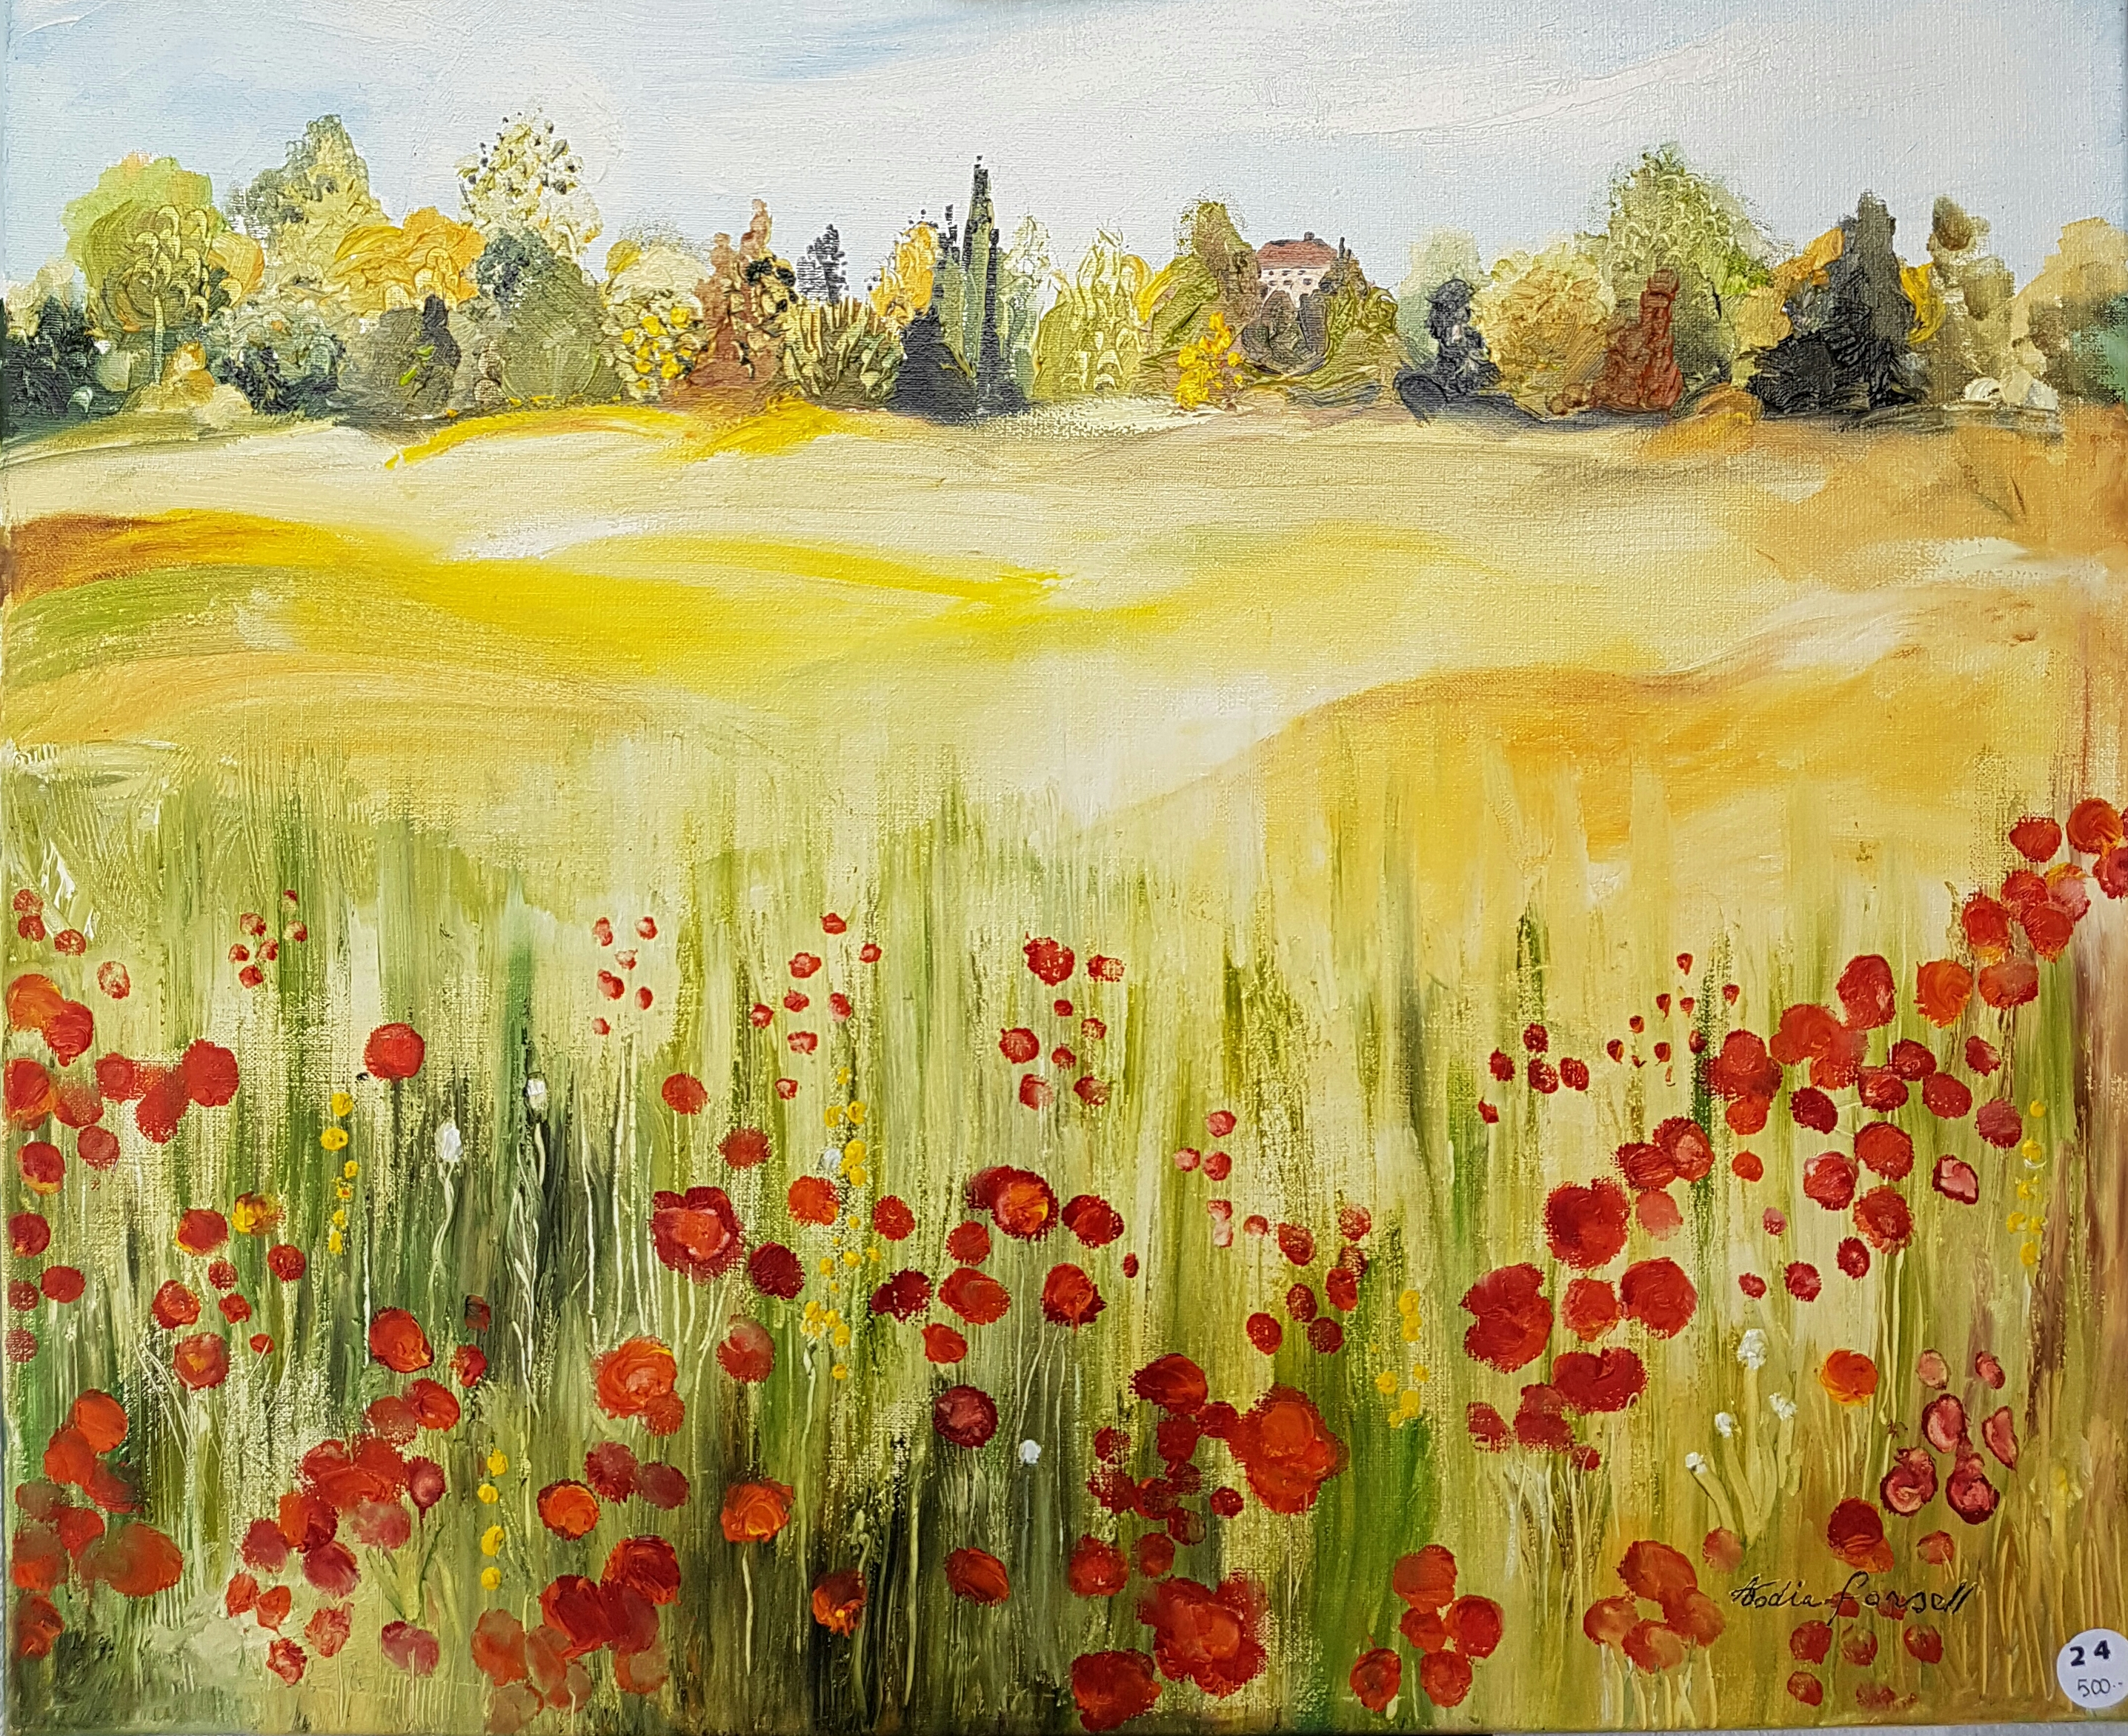 Nadia Forsell - le champ de coquelicots.jpg